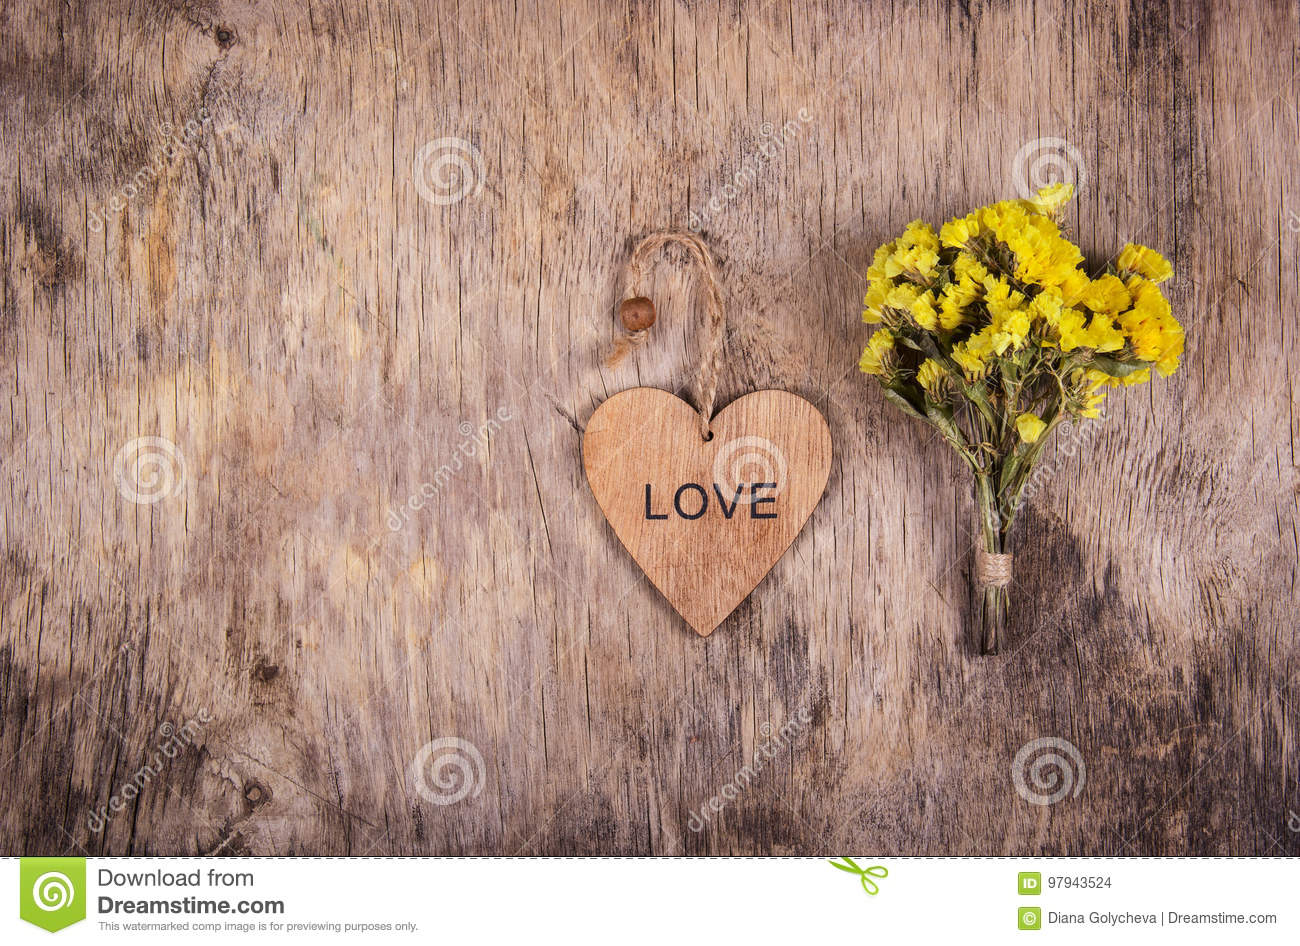 Wooden heart and yellow flowers on an old worn wooden background. Backgrounds and textures. Copy space